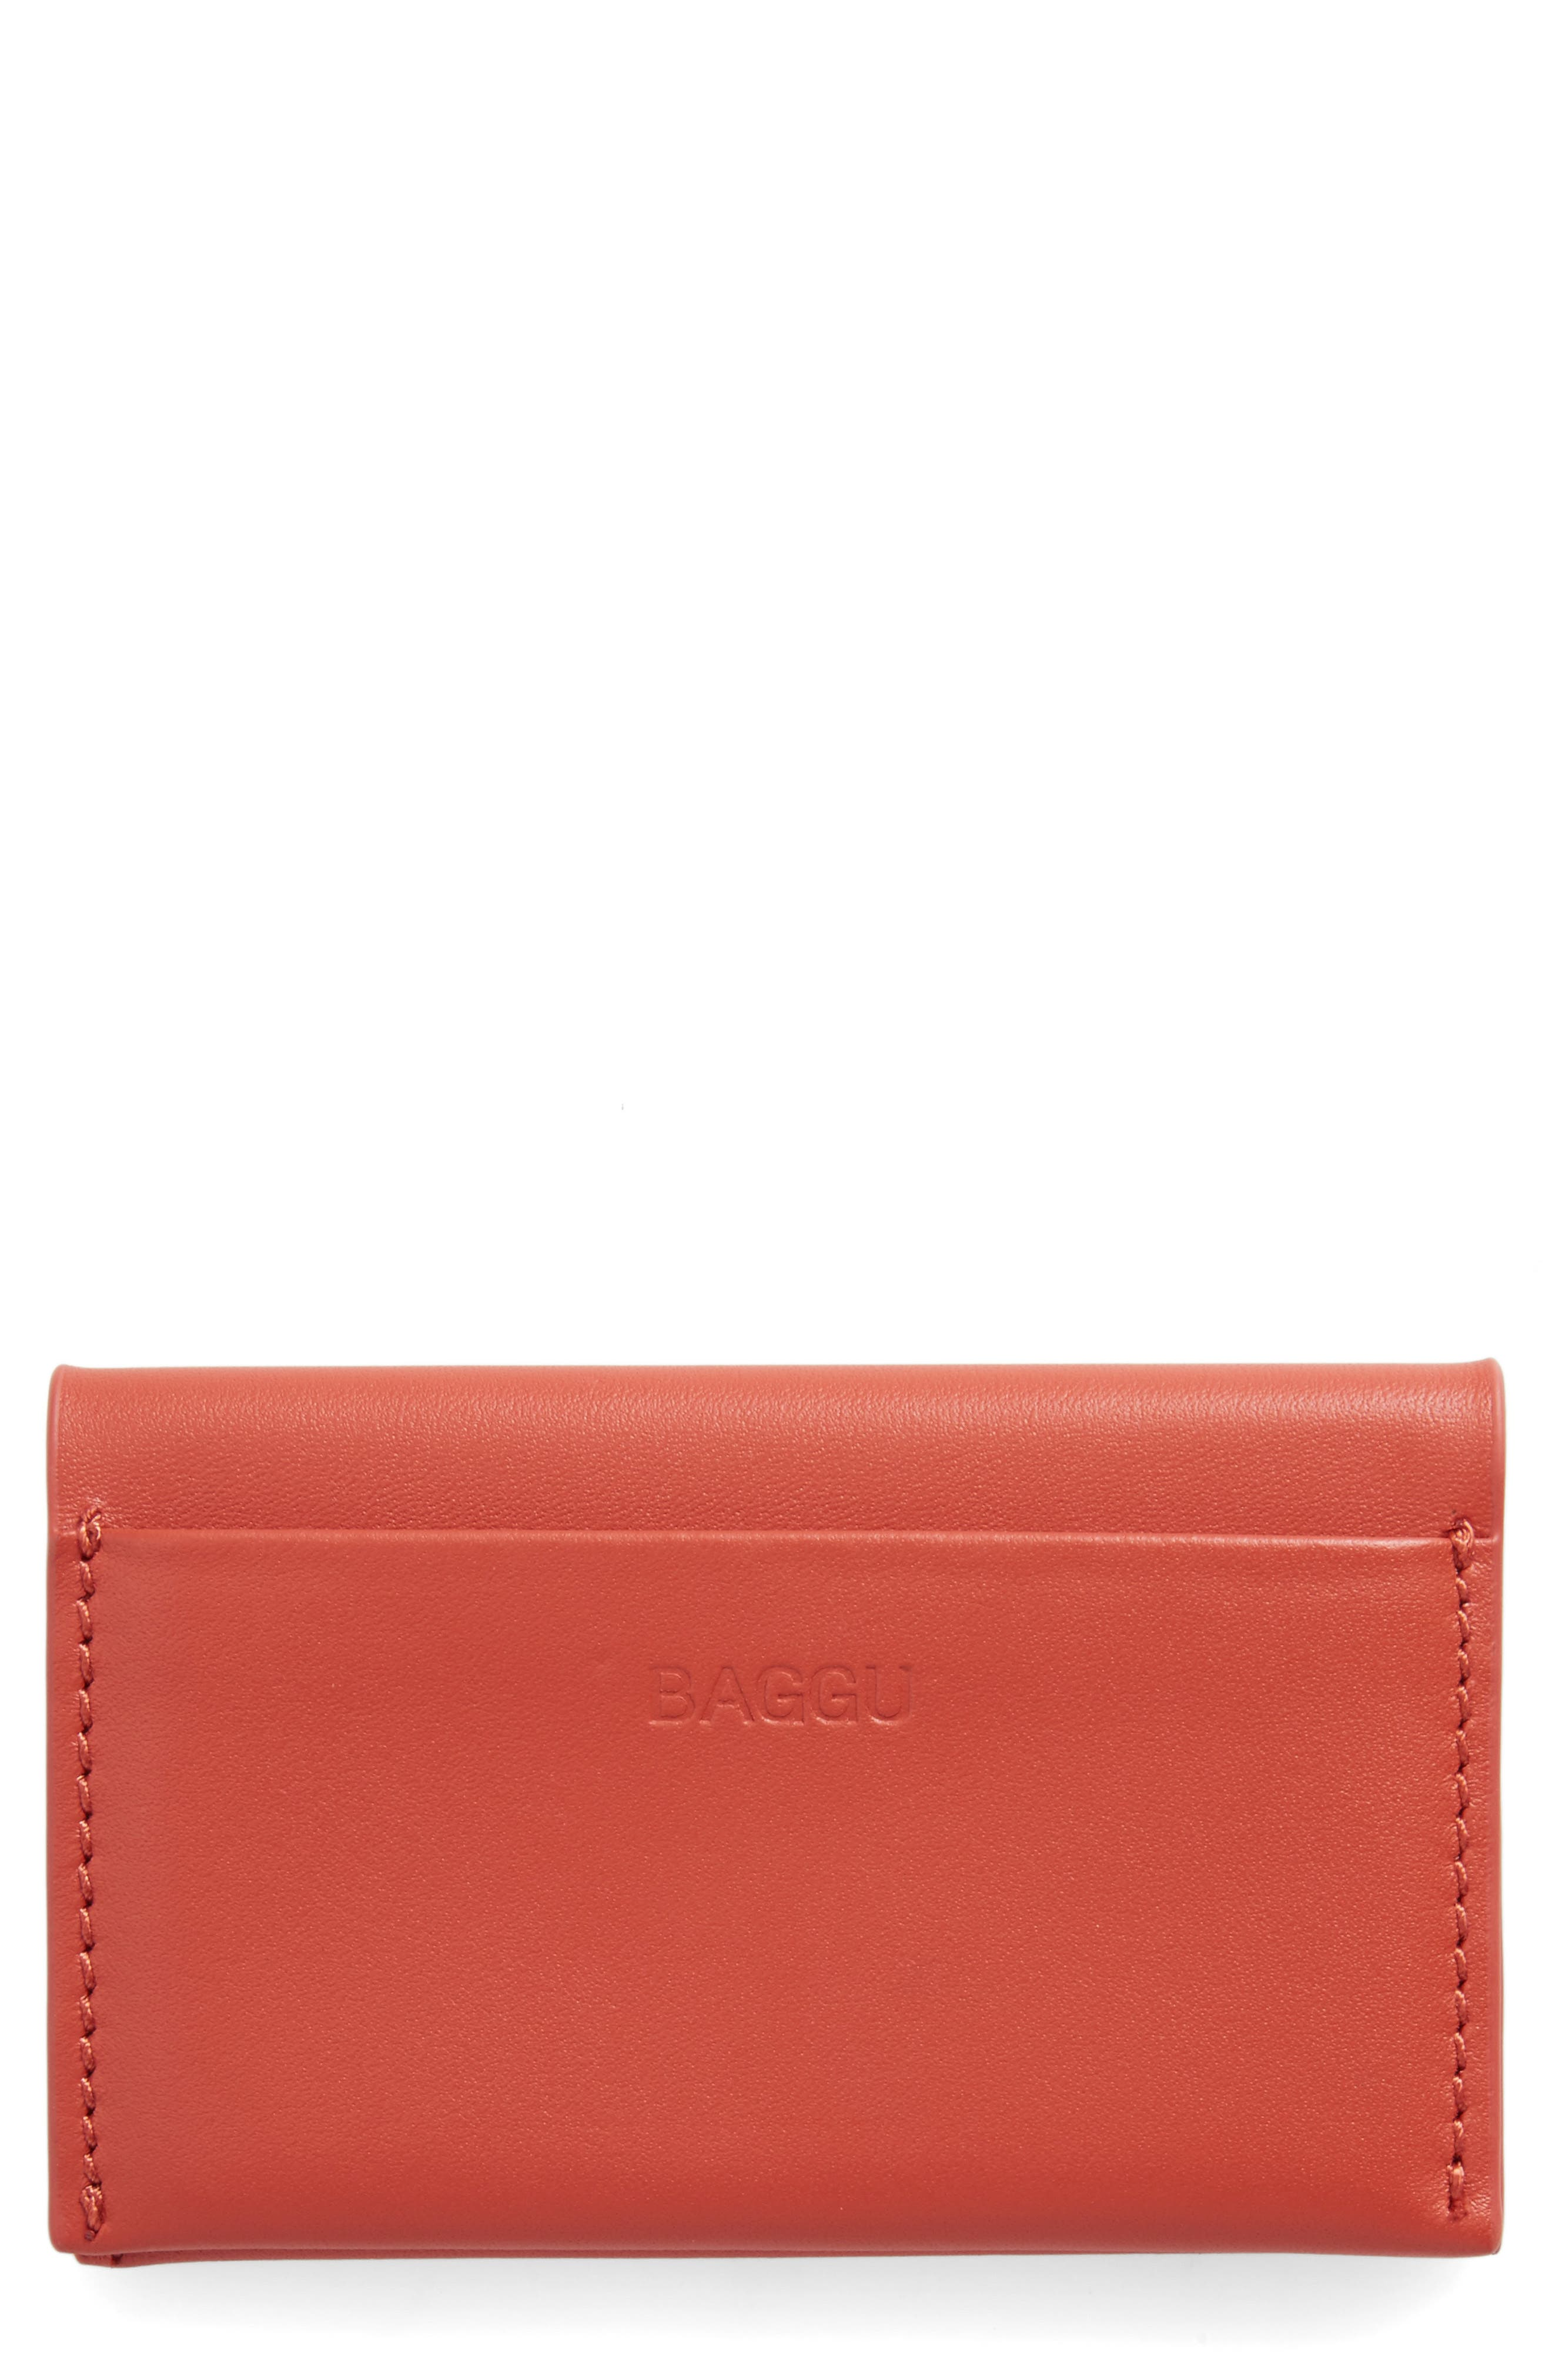 Alternate Image 1 Selected - Baggu Leather Card Case